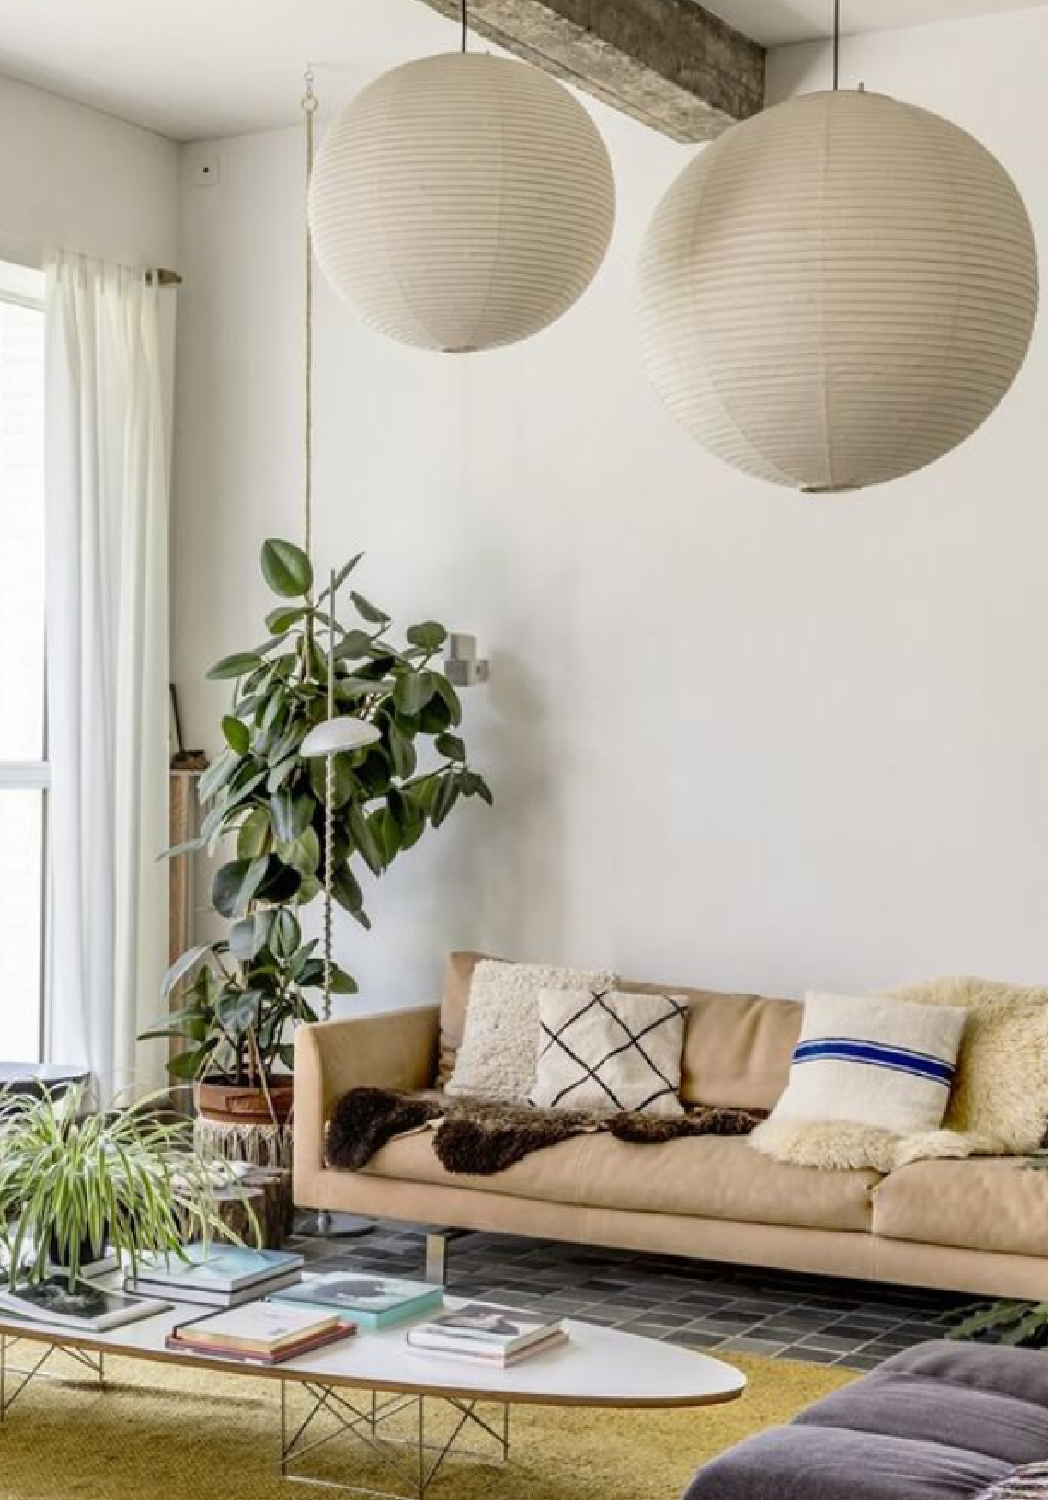 Scandi style living room with dramatic woven lanterns, houseplants, neutrals, and midcentury style - Elle Decor Sweden.